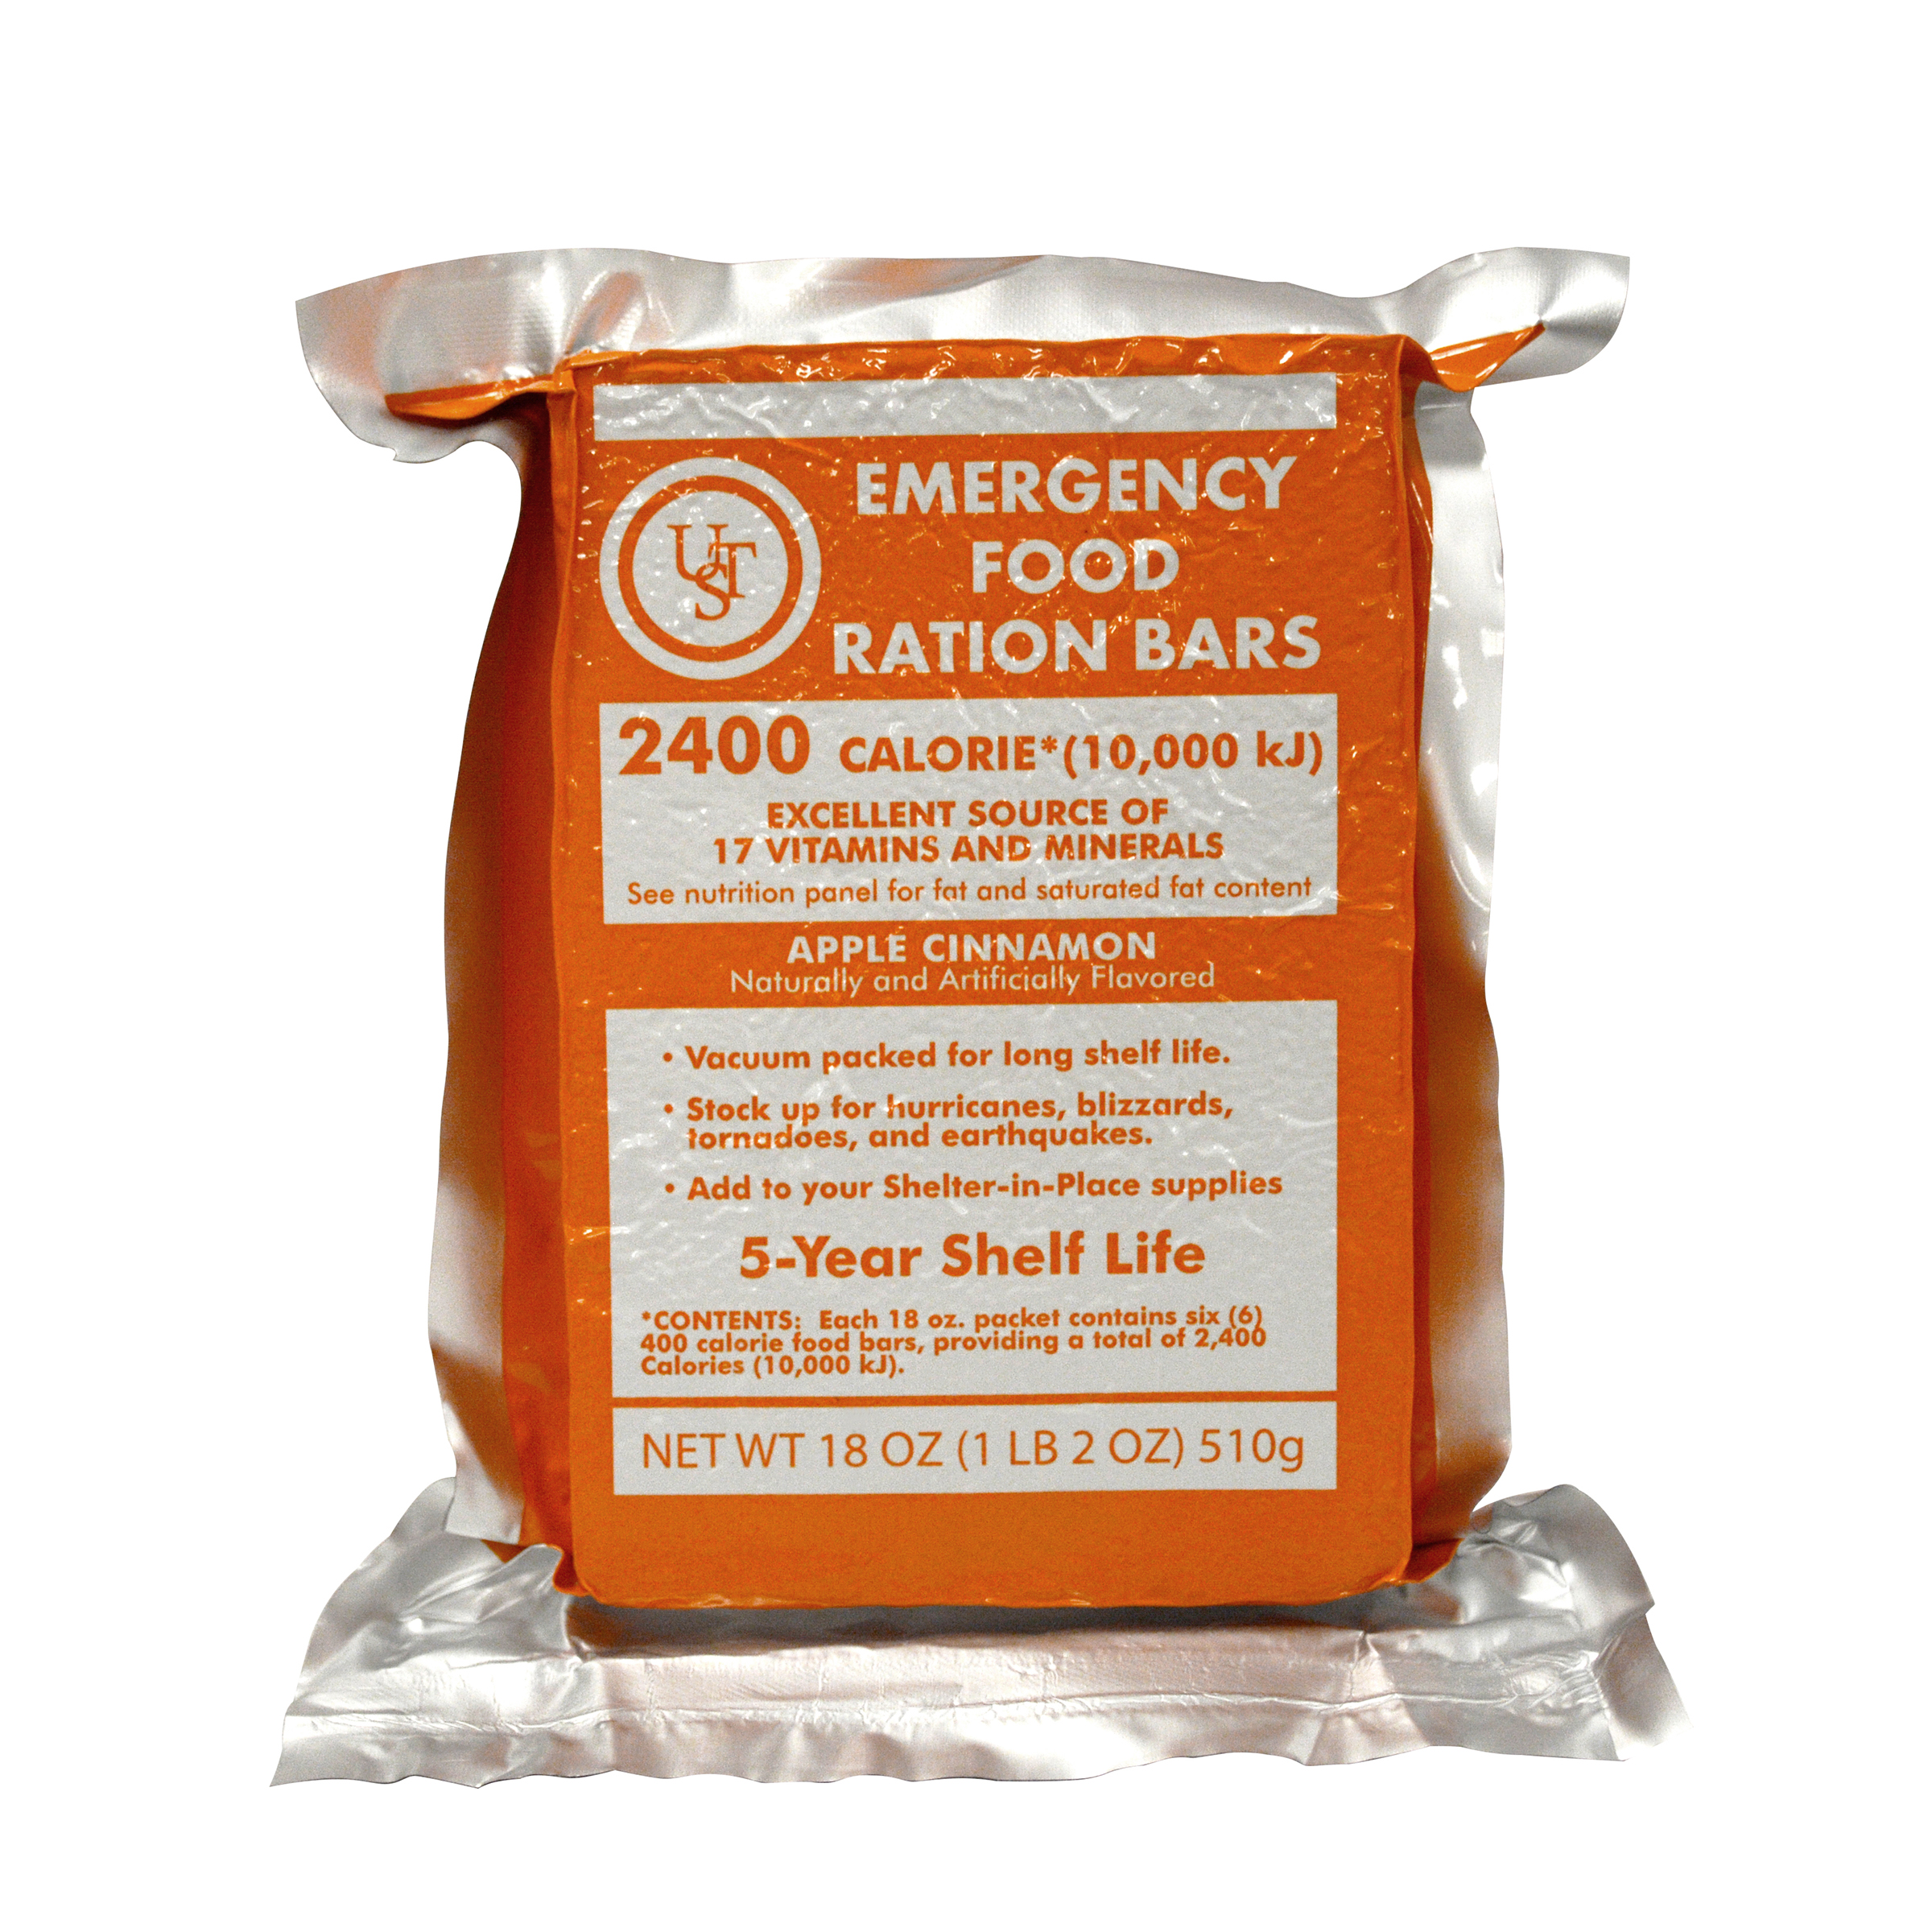 20-02020-06 - UST Brands Emergency Food Ration Bars, PDQ 4-ct PDQ